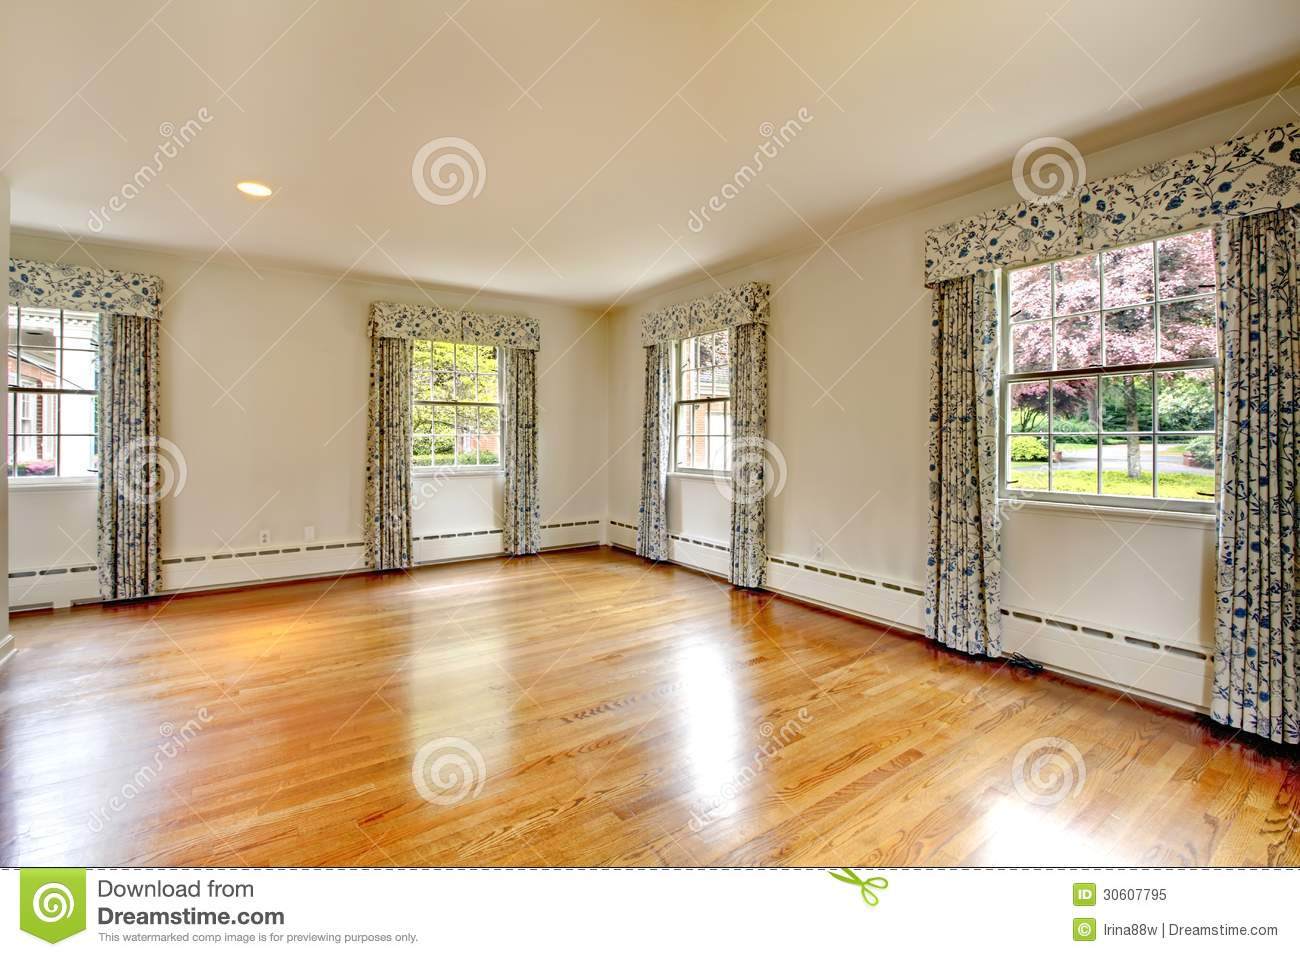 Large empty room with hardwood floor and curtains old luxury home stock image image 30607795 for Pictures of bedrooms with hardwood floors